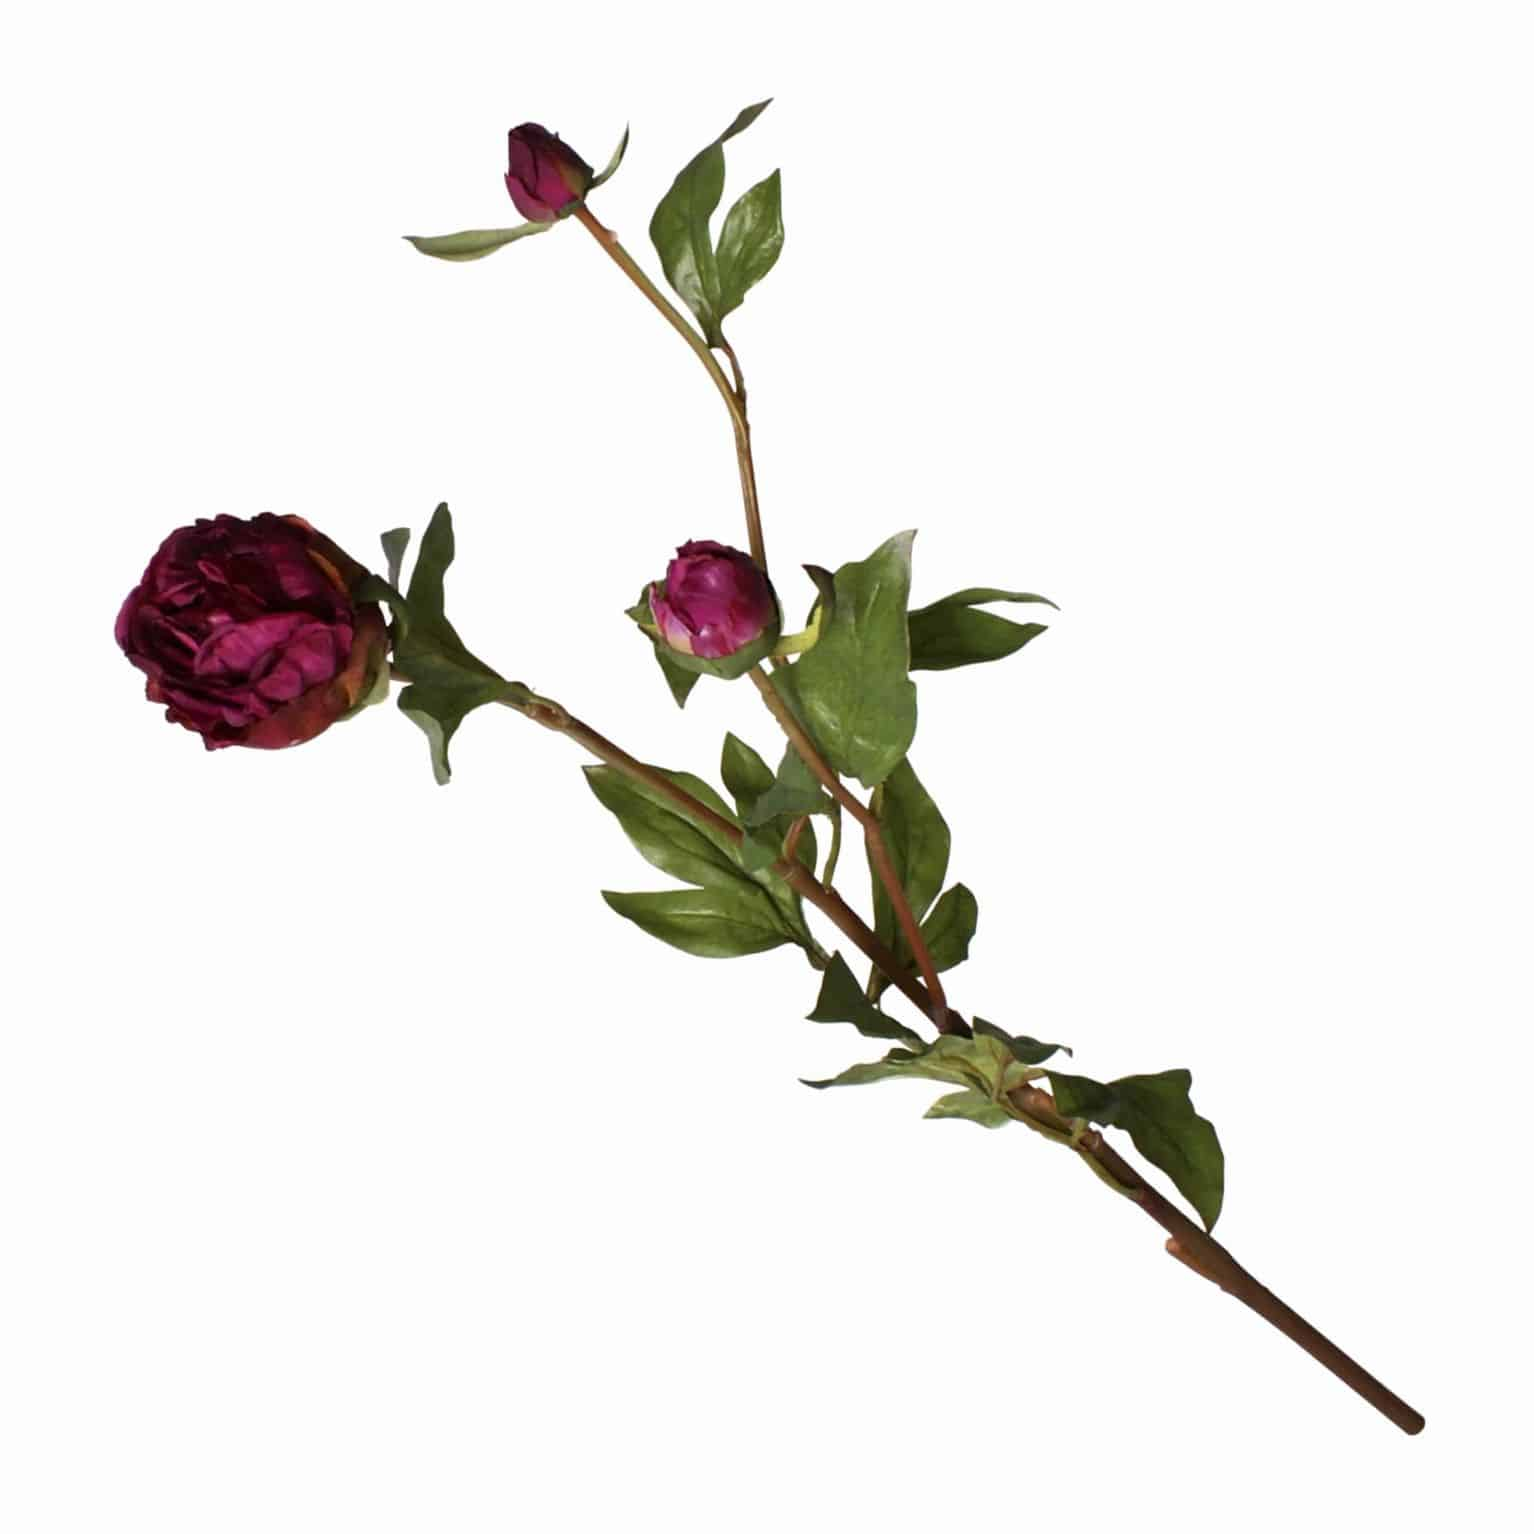 Buy one of the best silk flowers available. Our faux peony flower with bud